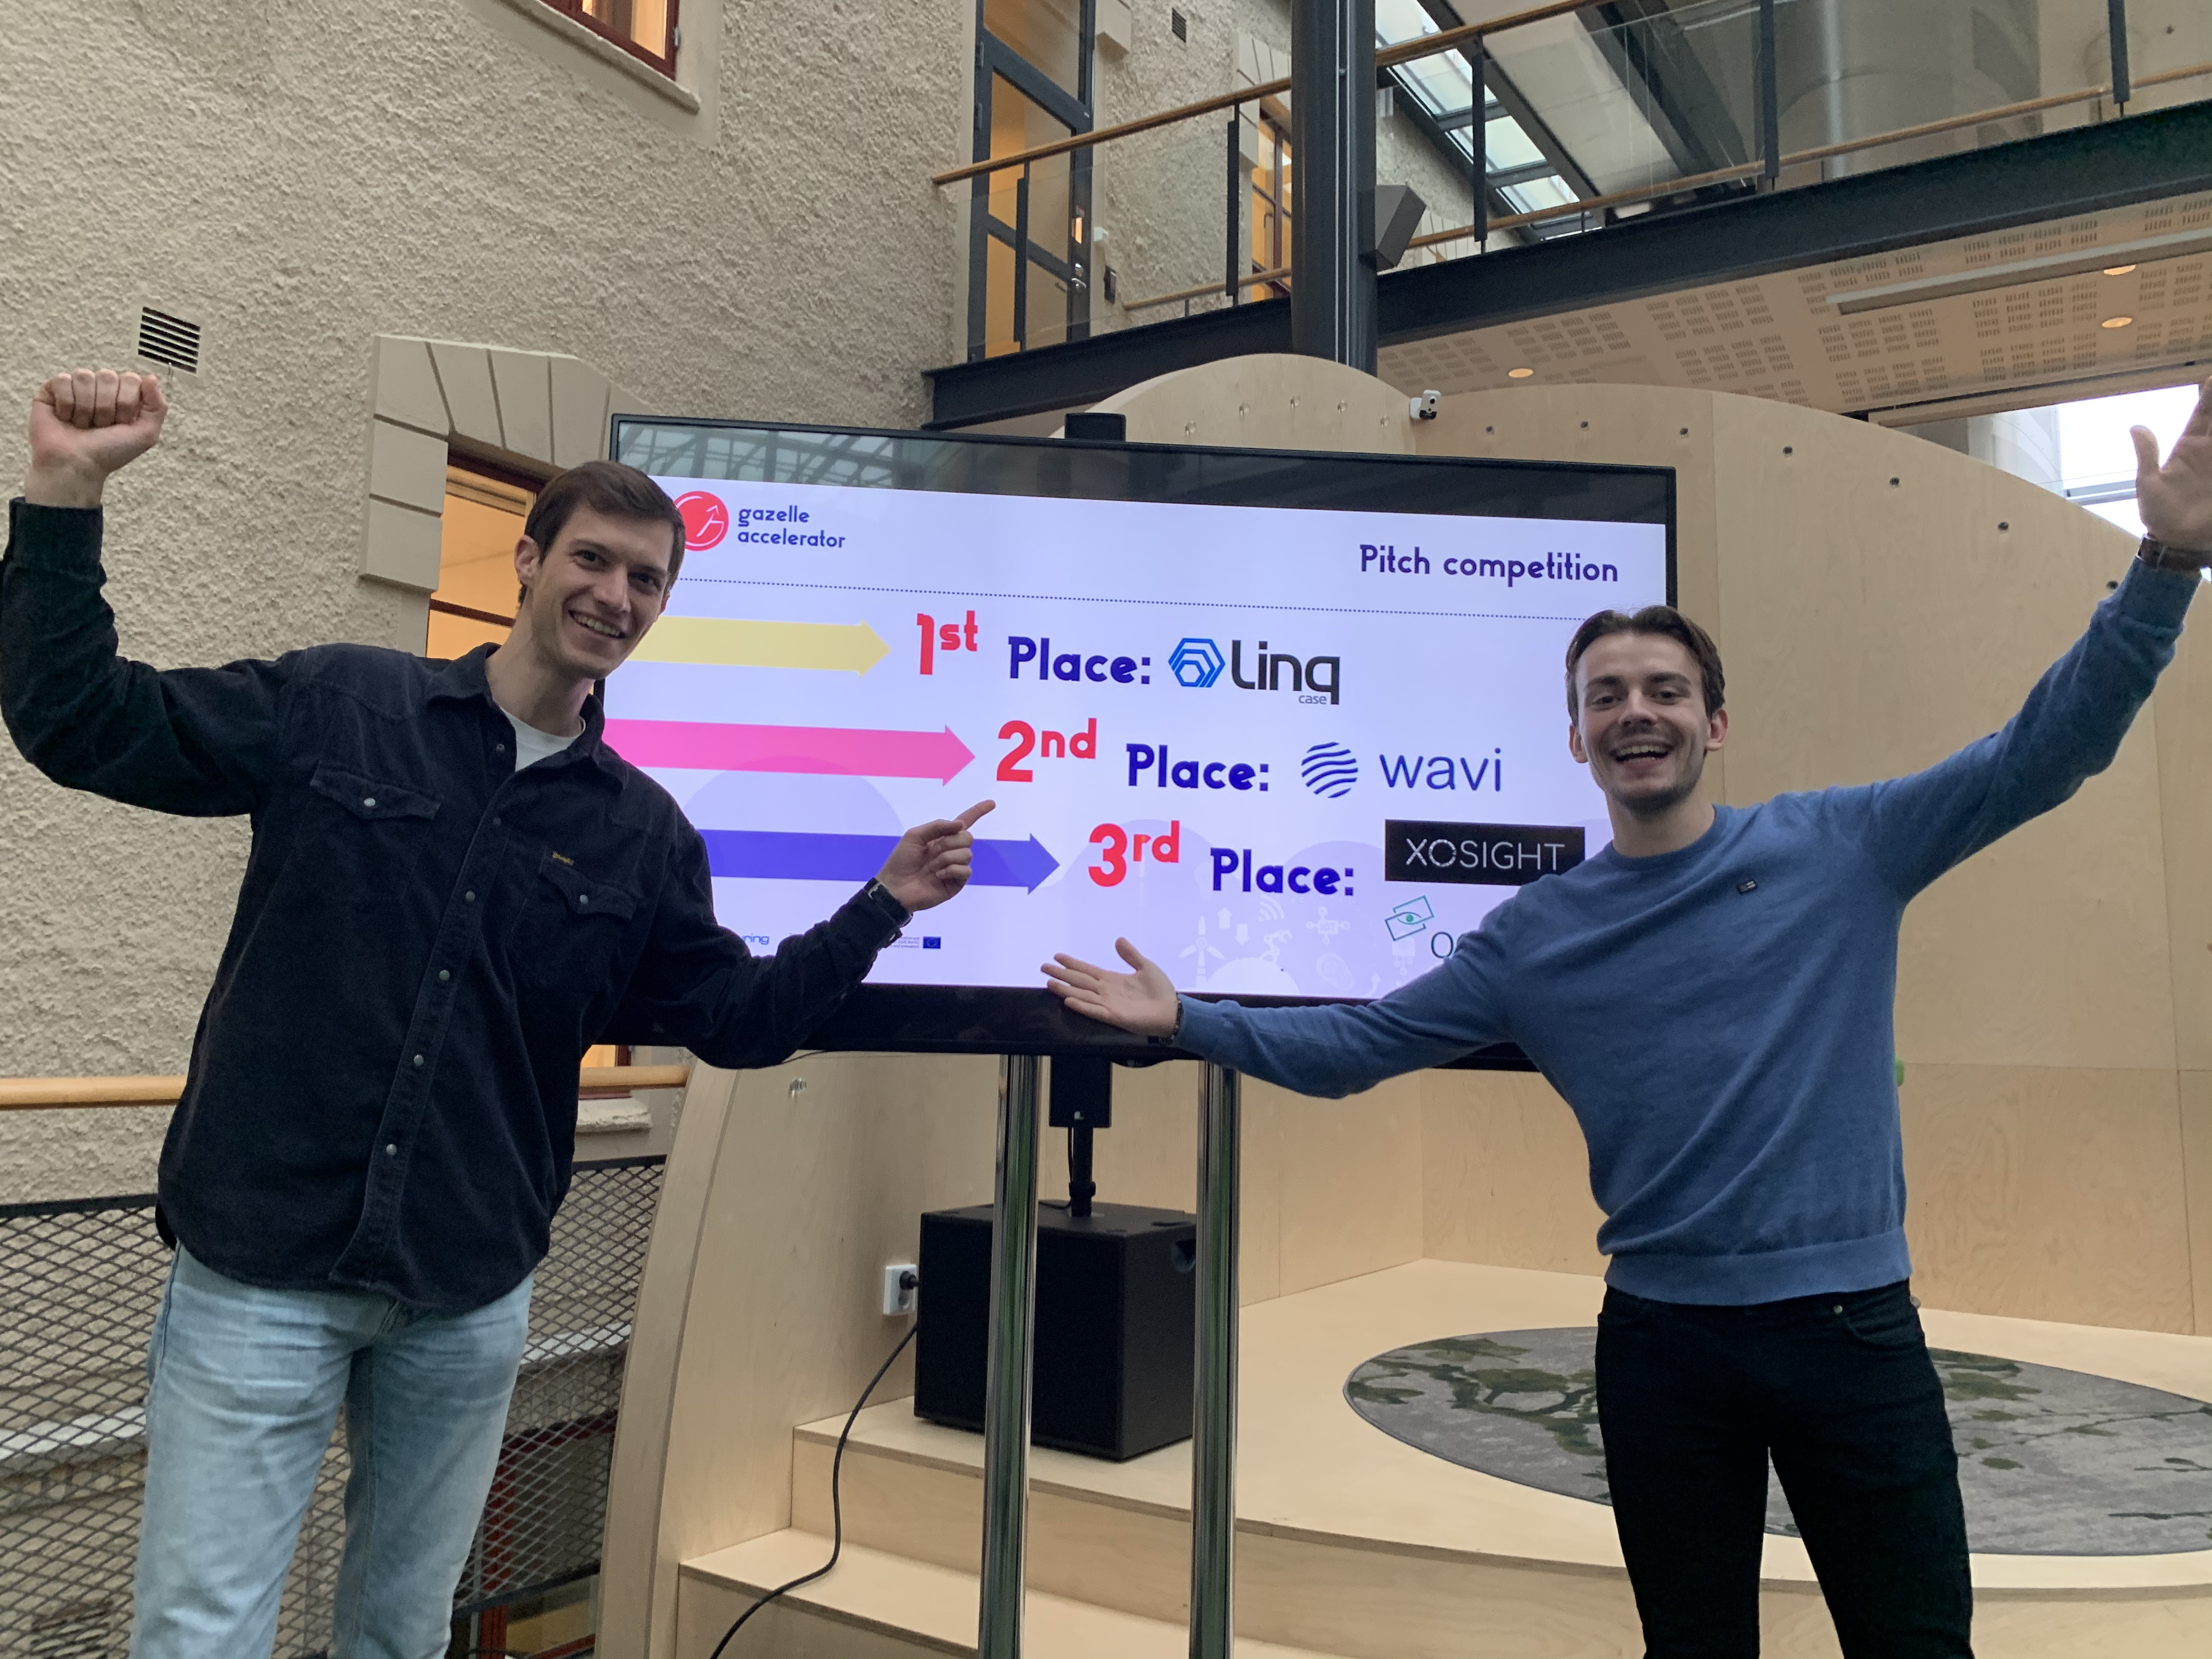 Wavi takes 2nd place in Gazelle Accelerator Road Show!